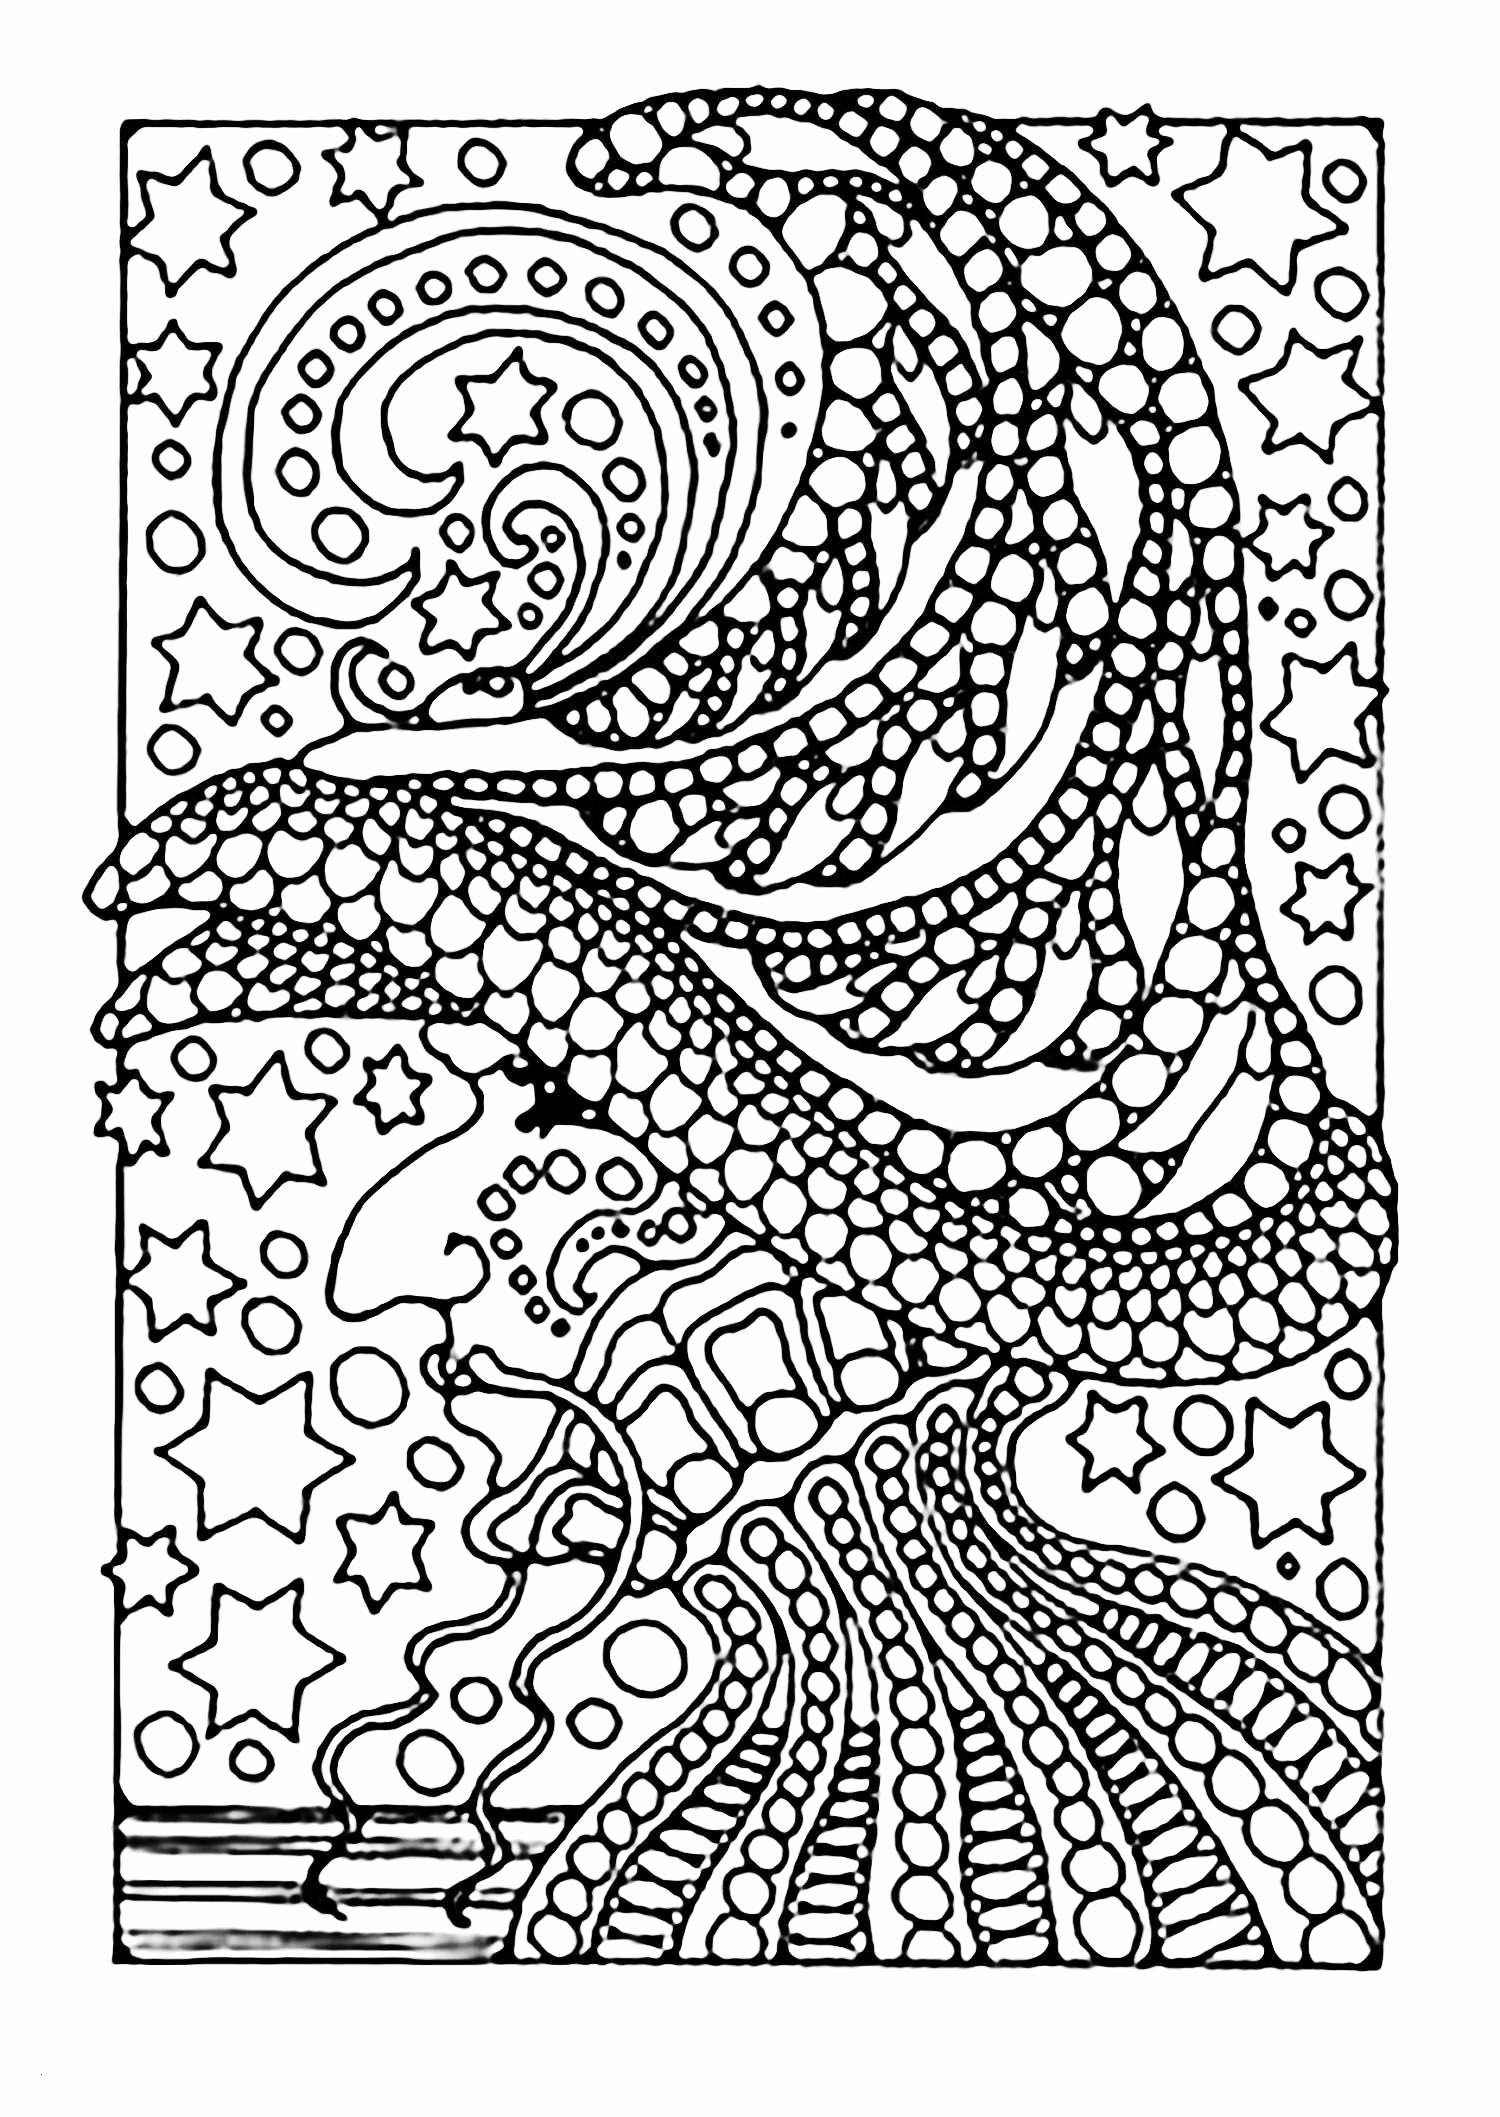 Gratis Online Spiele Fur Kindergartenkinder Genial Free Line Coloring Pages for Kids Coloring Pages Coloring Page